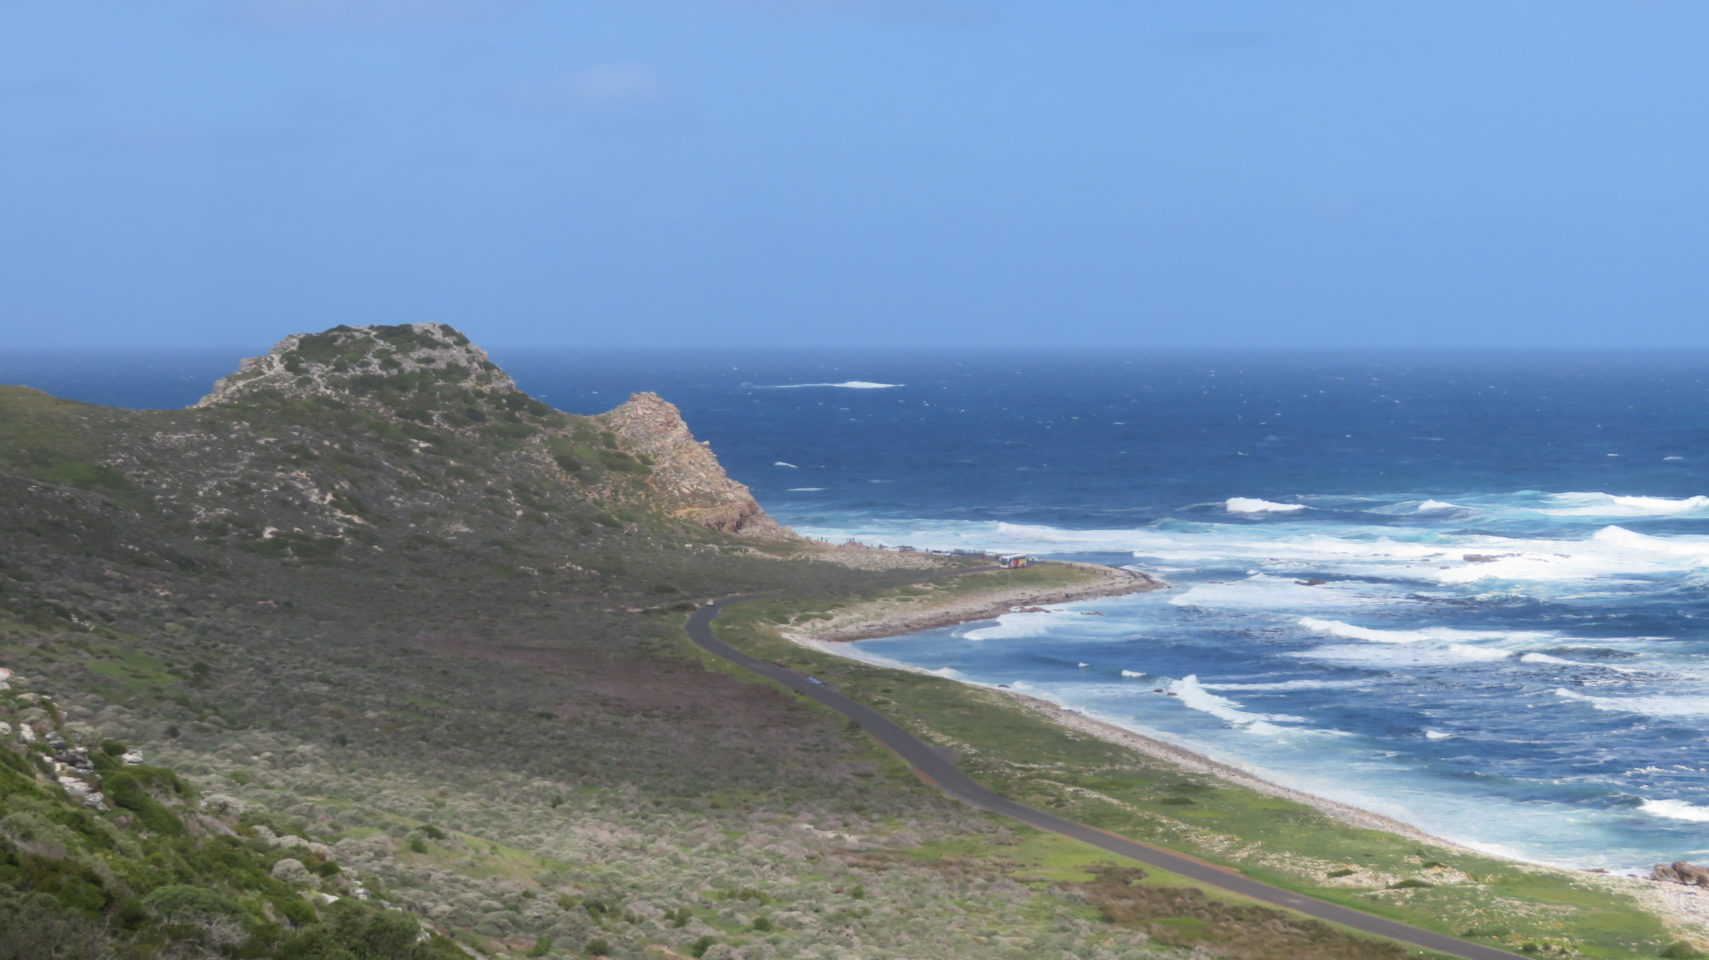 The renowned Cape of Good Hope ~ Cape Peninsula